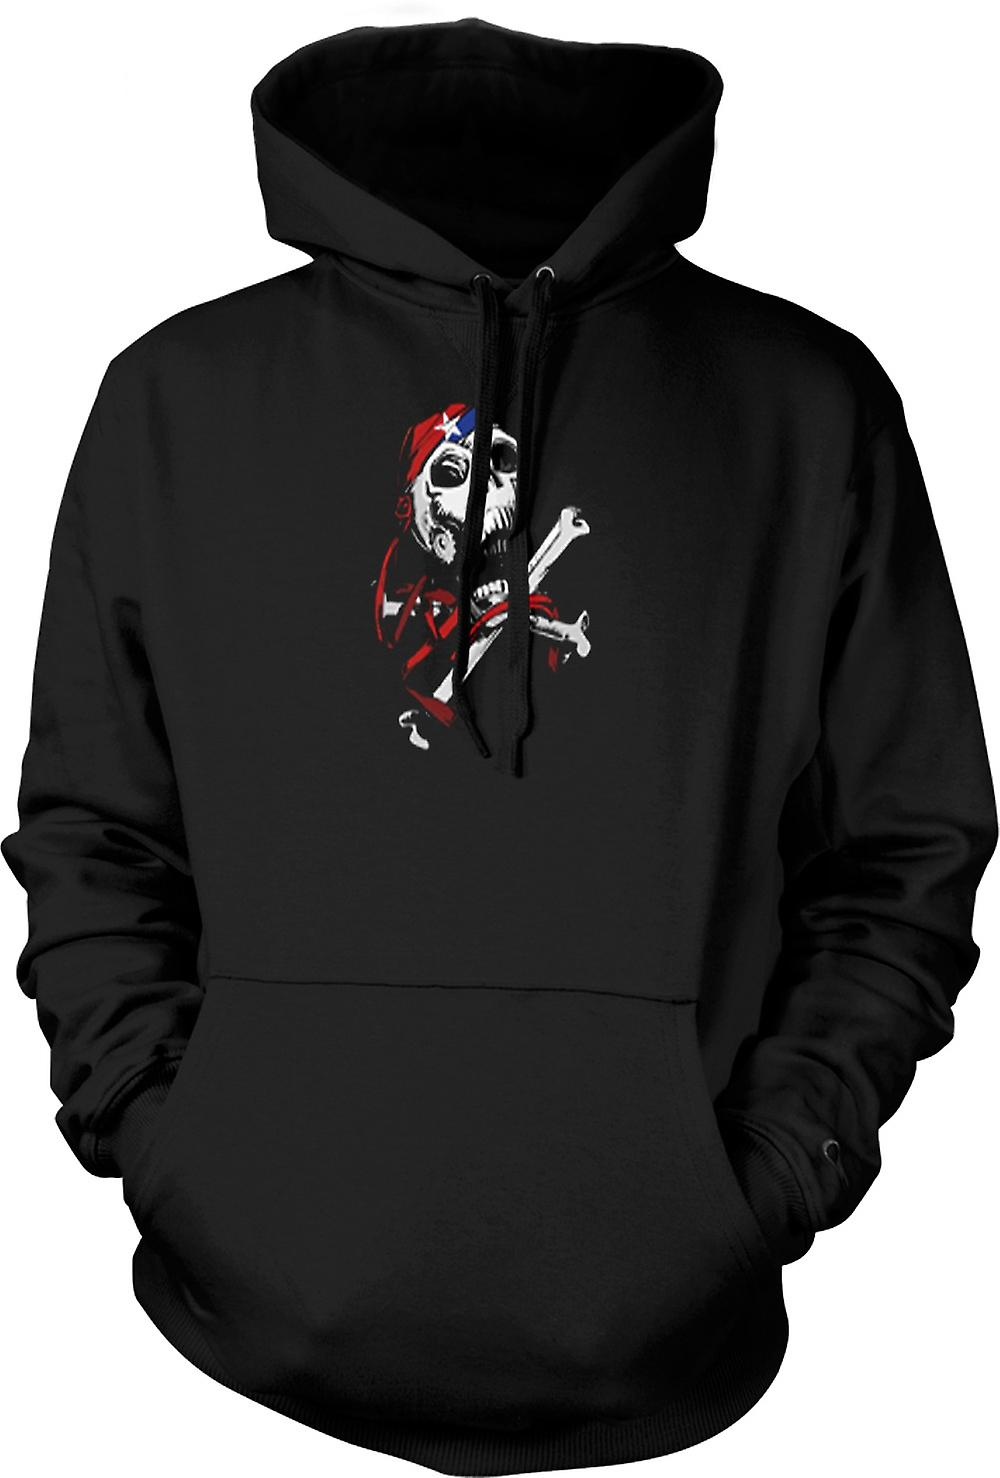 Kids Hoodie - Skull With Bandana & Cross Bones